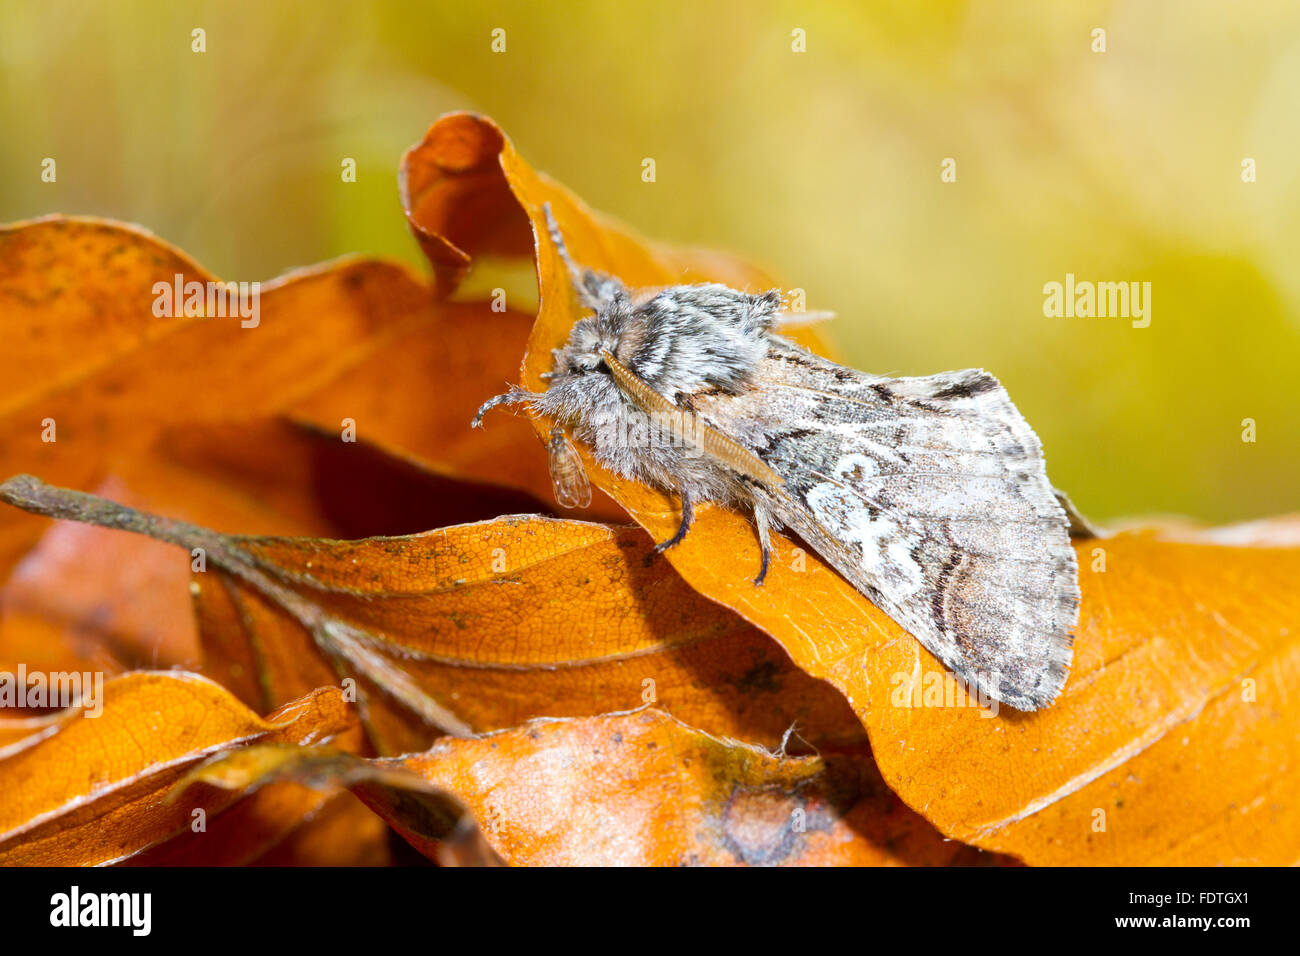 Figure of Eight (Diloba caeruleocephala) adult moth resting amongst fallen leaves in Autumn. Powys, Wales. October. - Stock Image